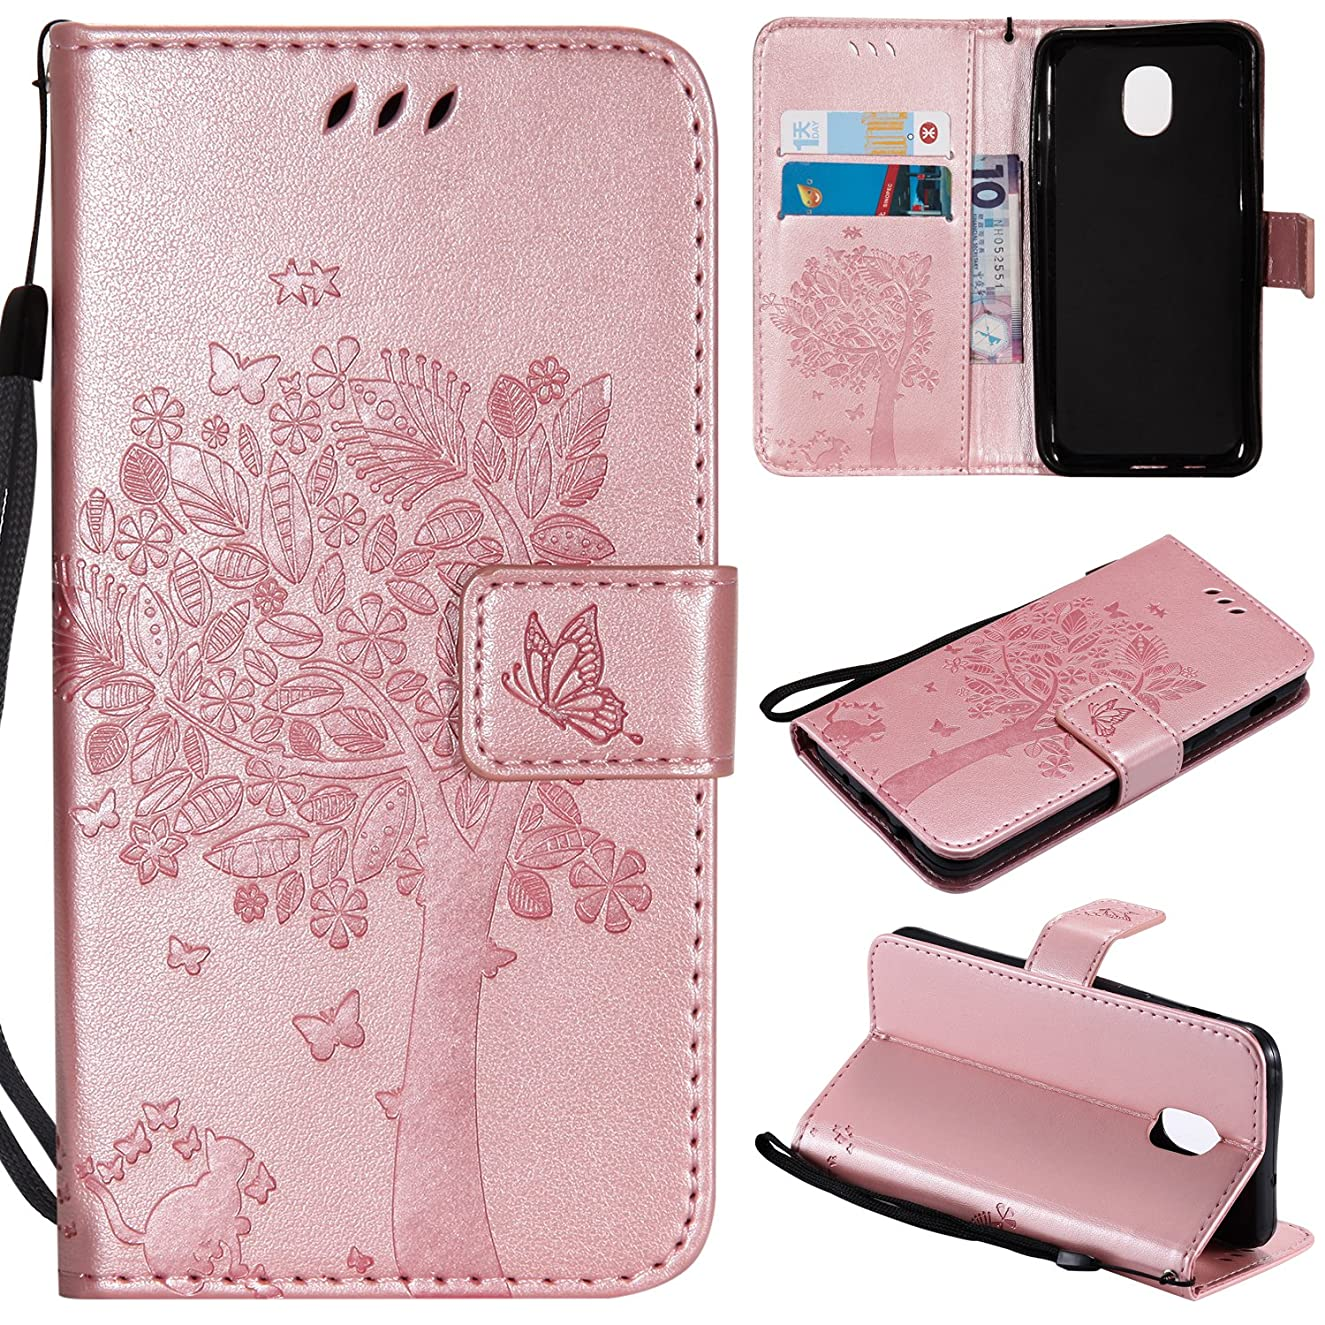 HAOTP Galaxy J7 2018 Case, for Samsung Galaxy J7 Aero/J7 Star/J7 Top/J7 Crown/J7 Aura/J7 Refine/J7 Eon Case,Tree Cat Embossed PU Leather Flip Cover TPU Inner Bumper Card Holders Wallet Case Rose Gold